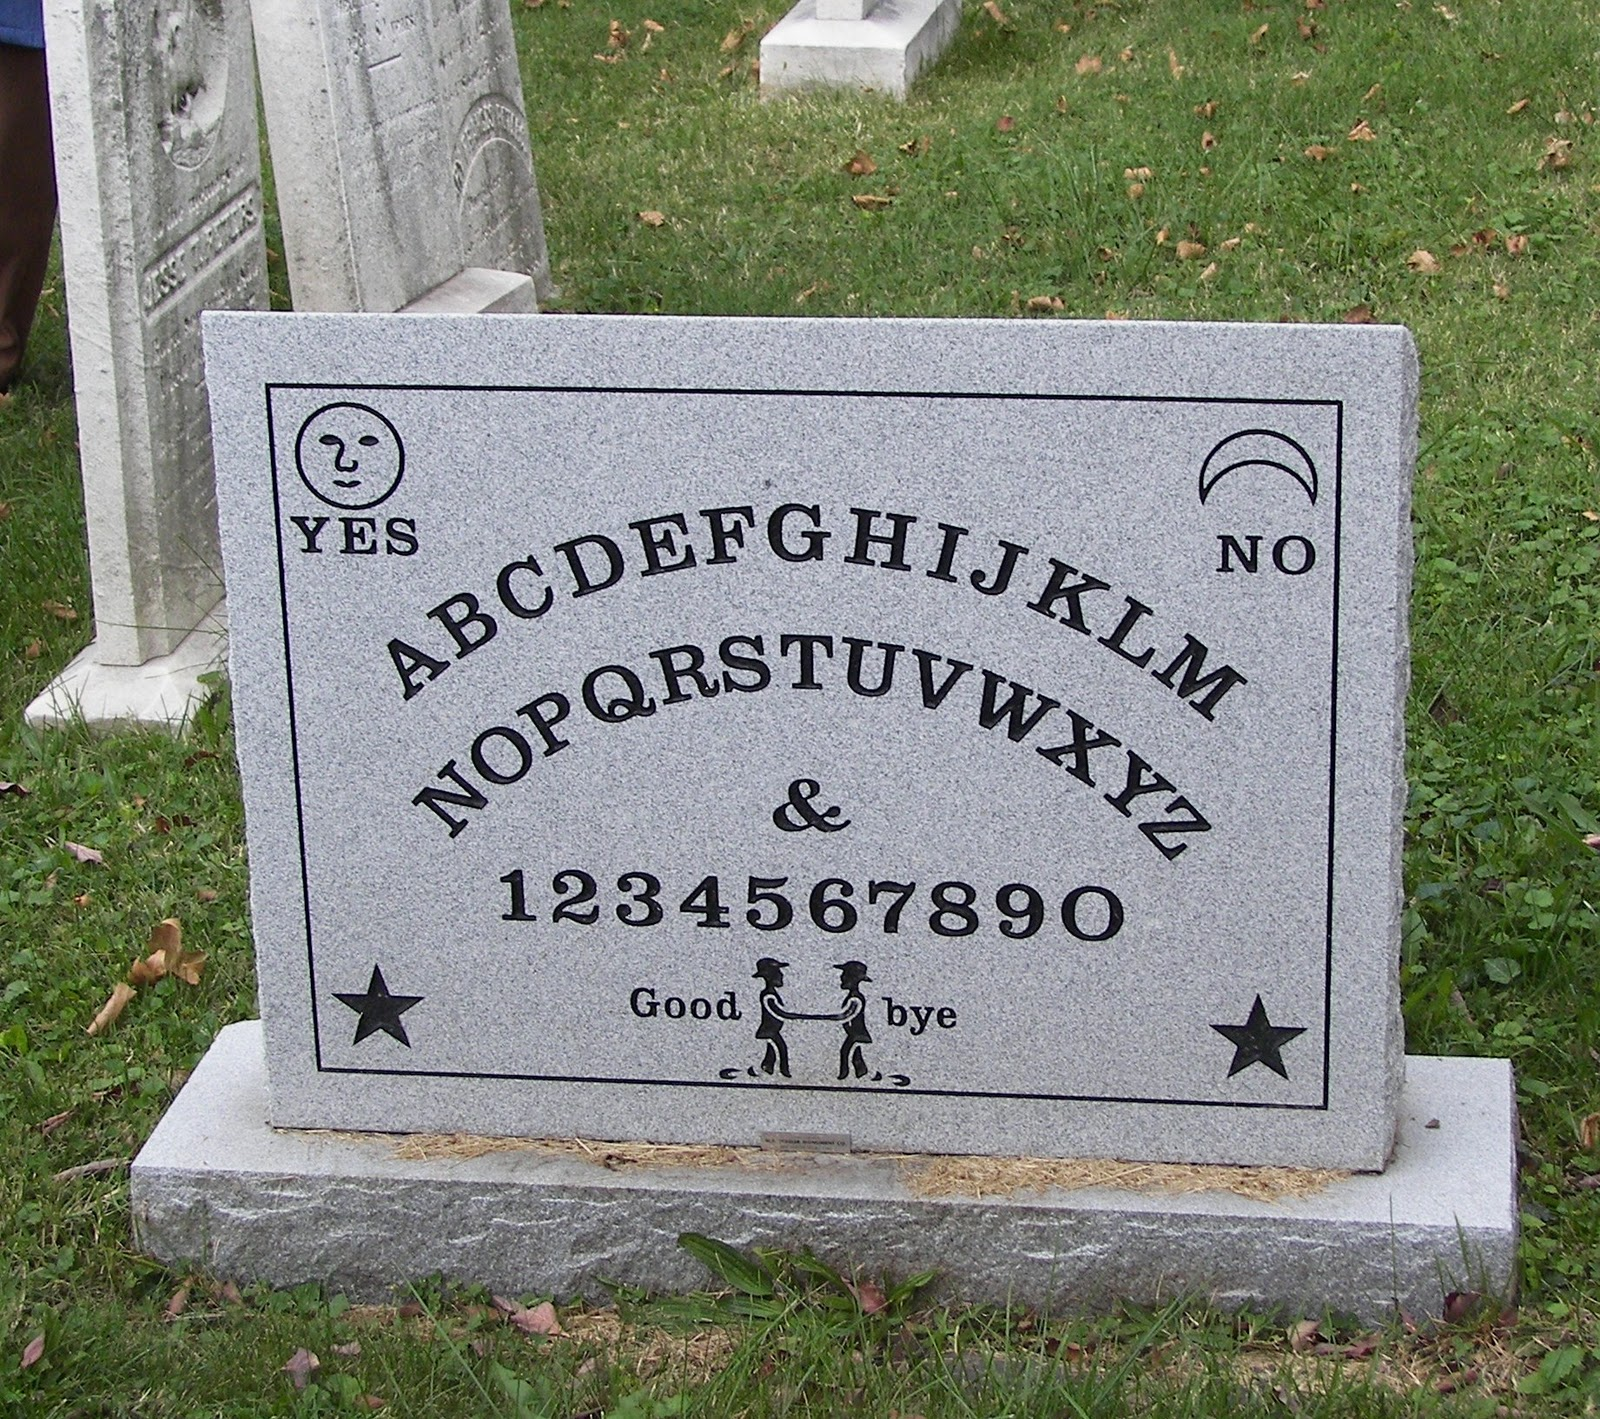 Friday Funny Ouija Tombstone